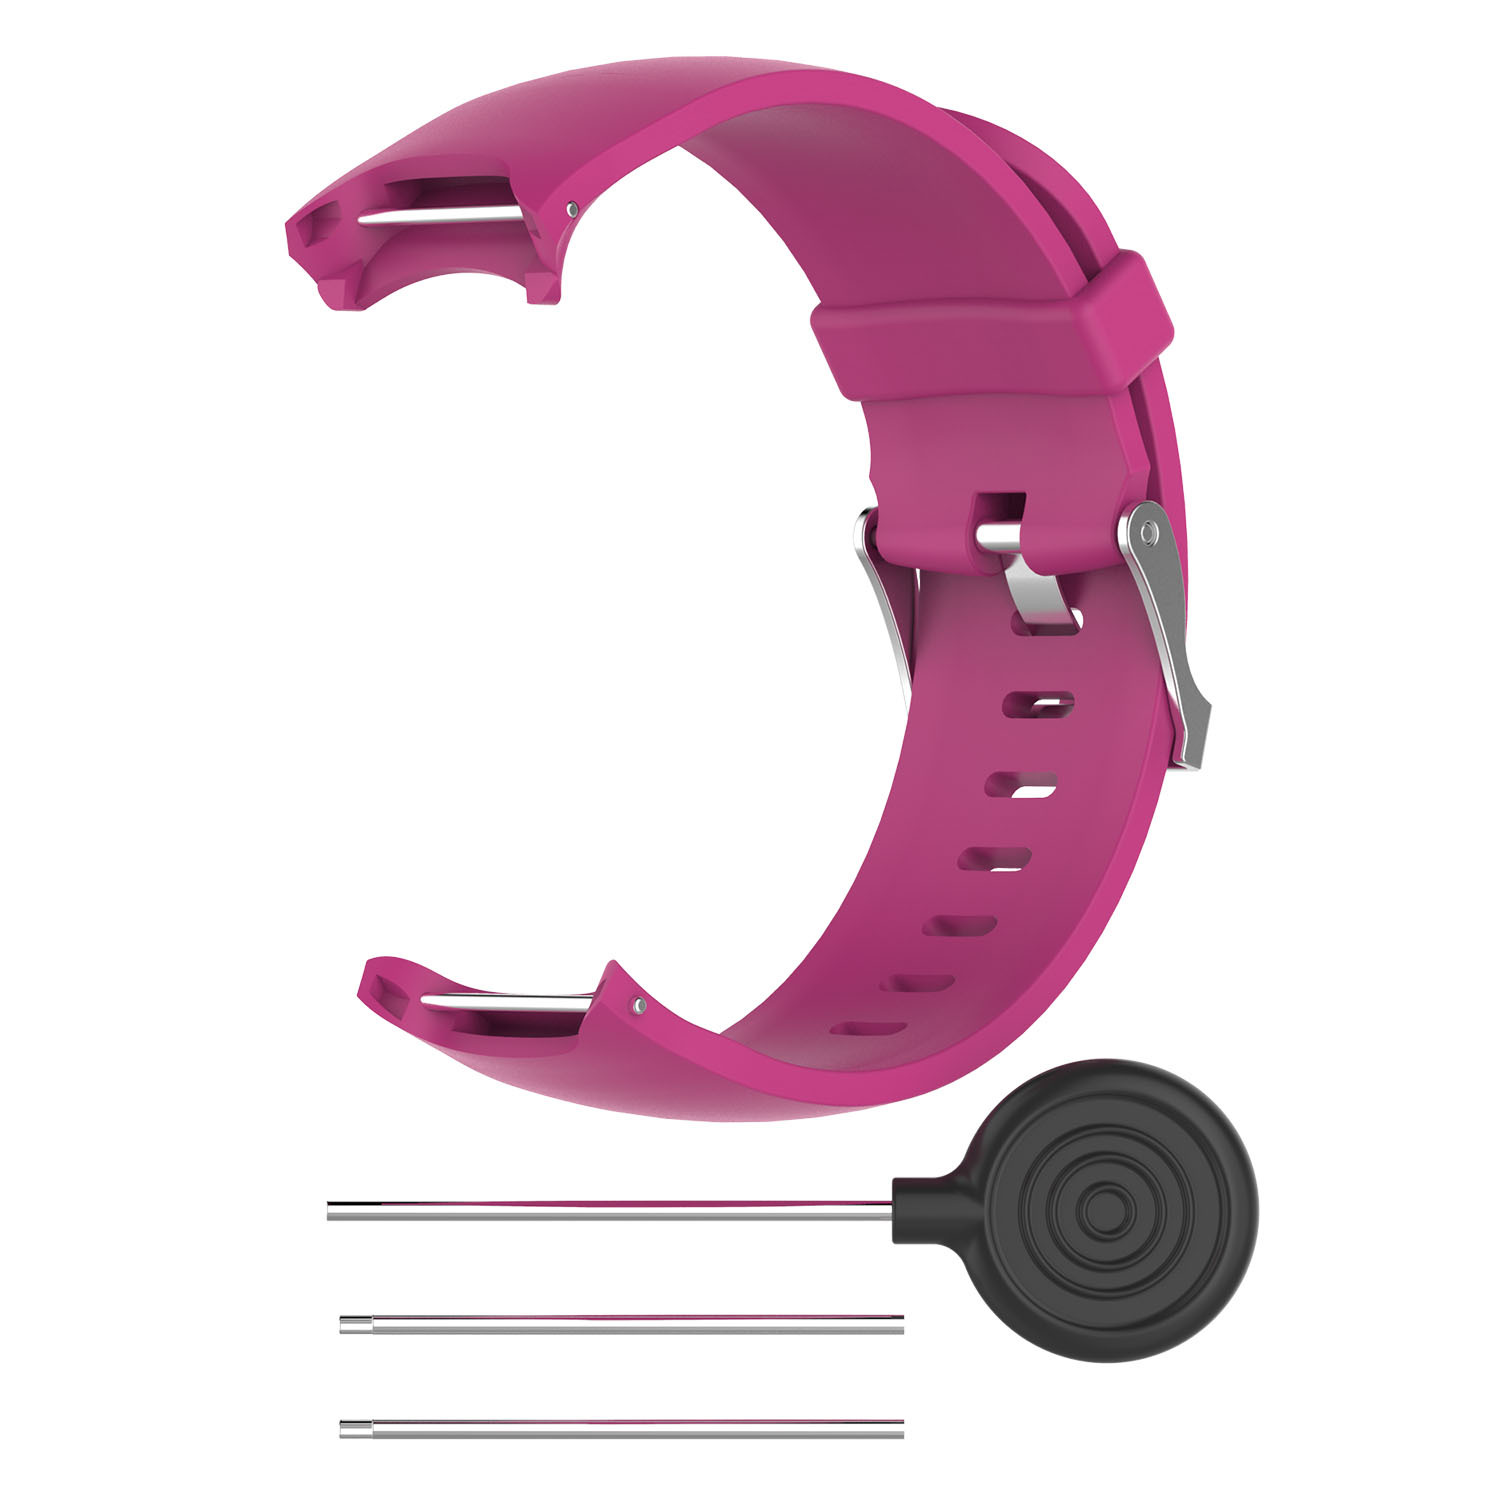 Wrist Band for Garmin Approach S3 GPS Watch Elegant Silicone Watch Strap with Tool Individualized Adjustment rose red